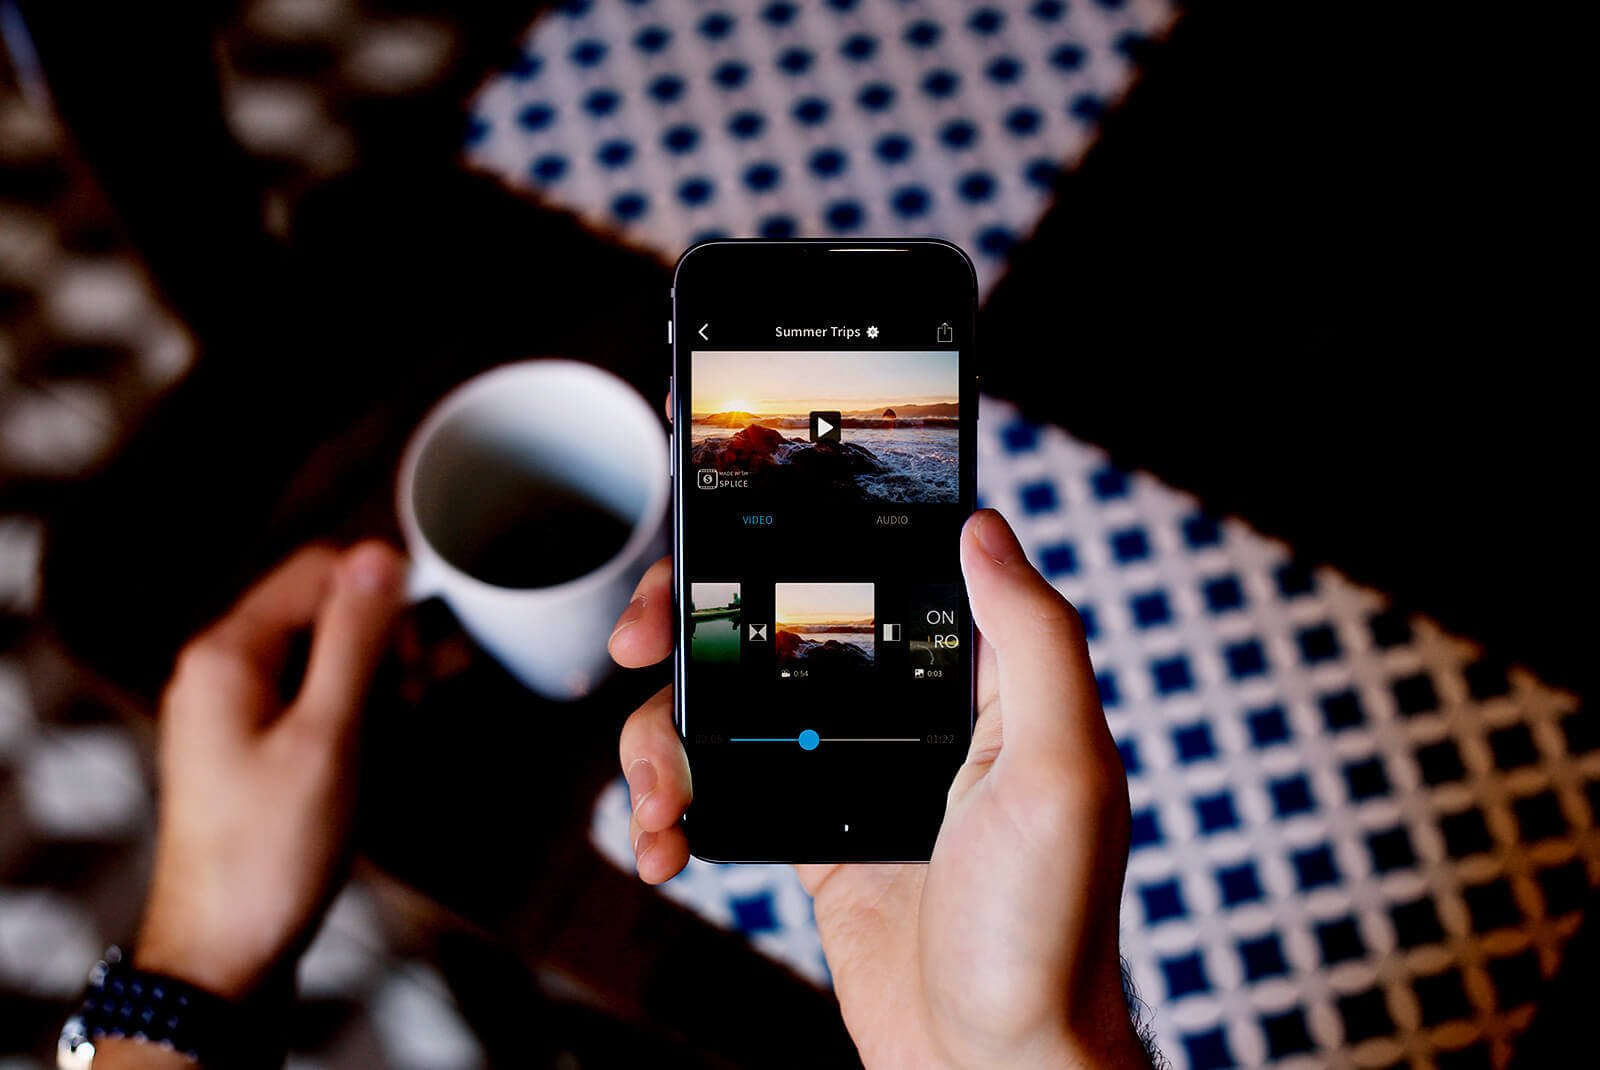 Build your own photo editing and sharing camera application